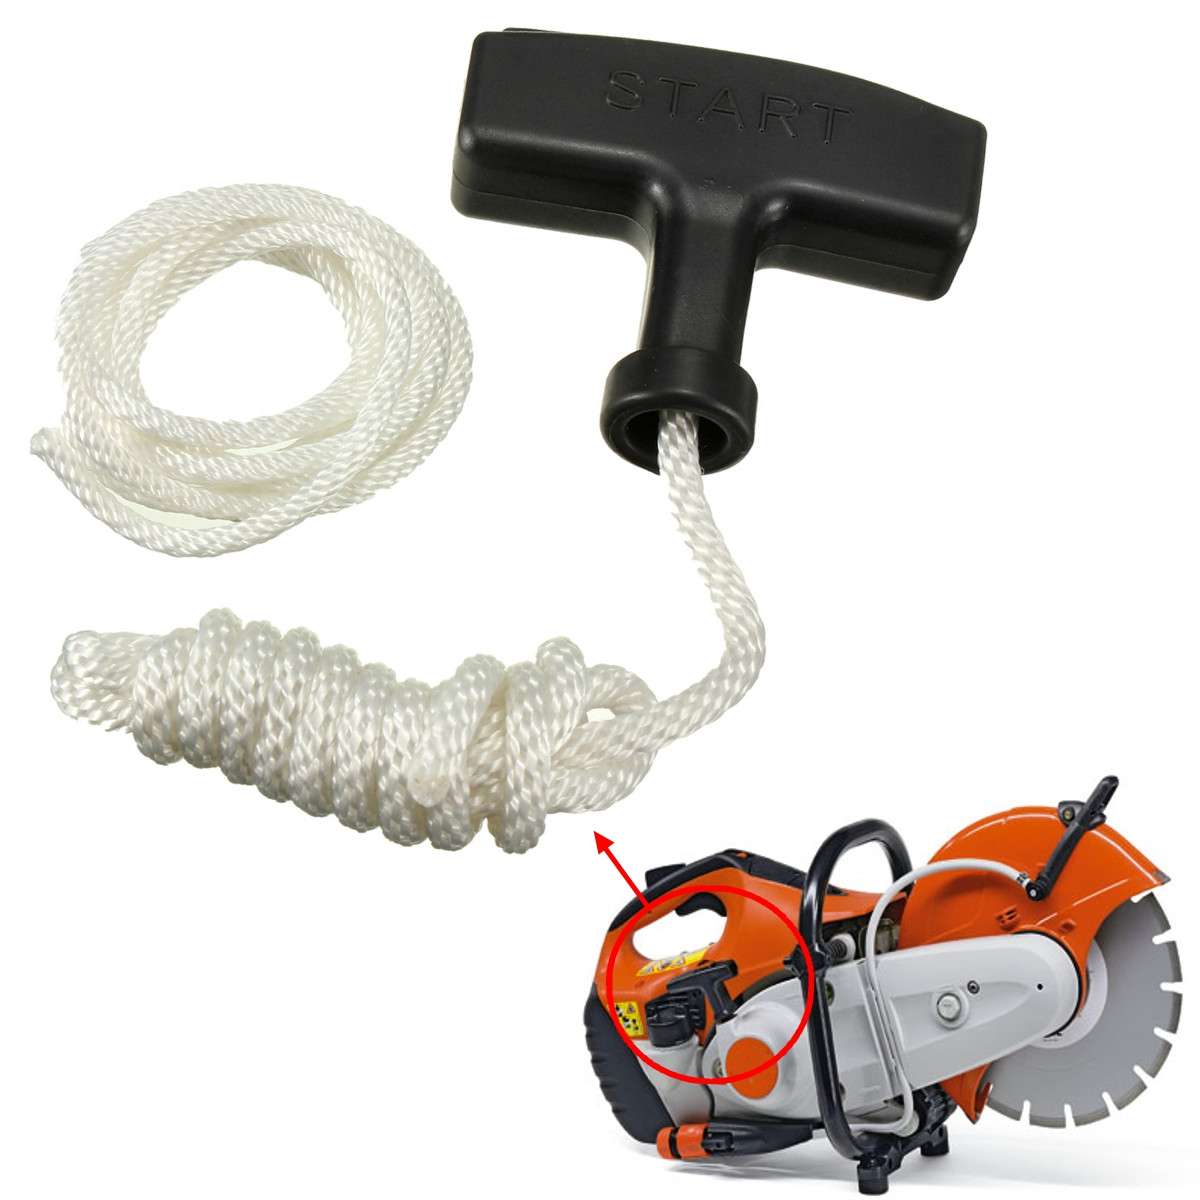 1x Universal Replacement Chainsaw Strimmer Starter Recoil Pull Handle With Rope & Spare Cord